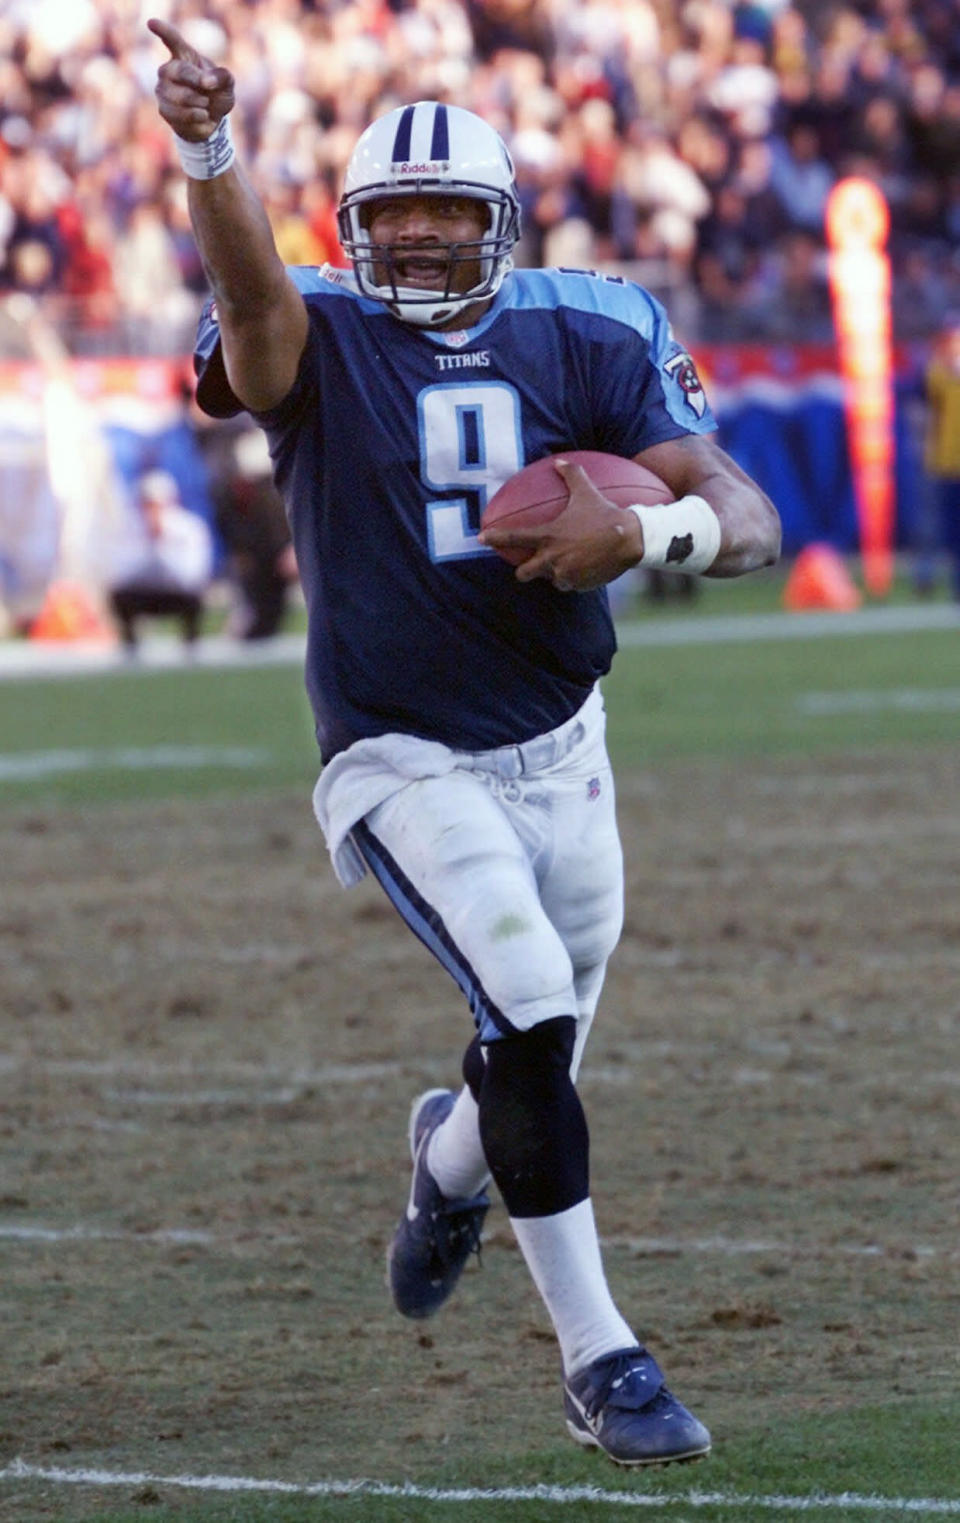 FILE - In this Dec. 19, 1999, file photo, Tennessee Titans quarterback Steve McNair points to the stands as he crosses the goal line for a fourth-quarter 3-yard touchdown during the Titans' 30-17 win over the Atlanta Falcons in Nashville, Tenn. The Tennessee Titans retiring Eddie George's No. 27 and the No. 9 of the late Steve McNair has turned from a simple halftime ceremony into a celebration and team reunion. (AP Photo/John Russell, FIle)